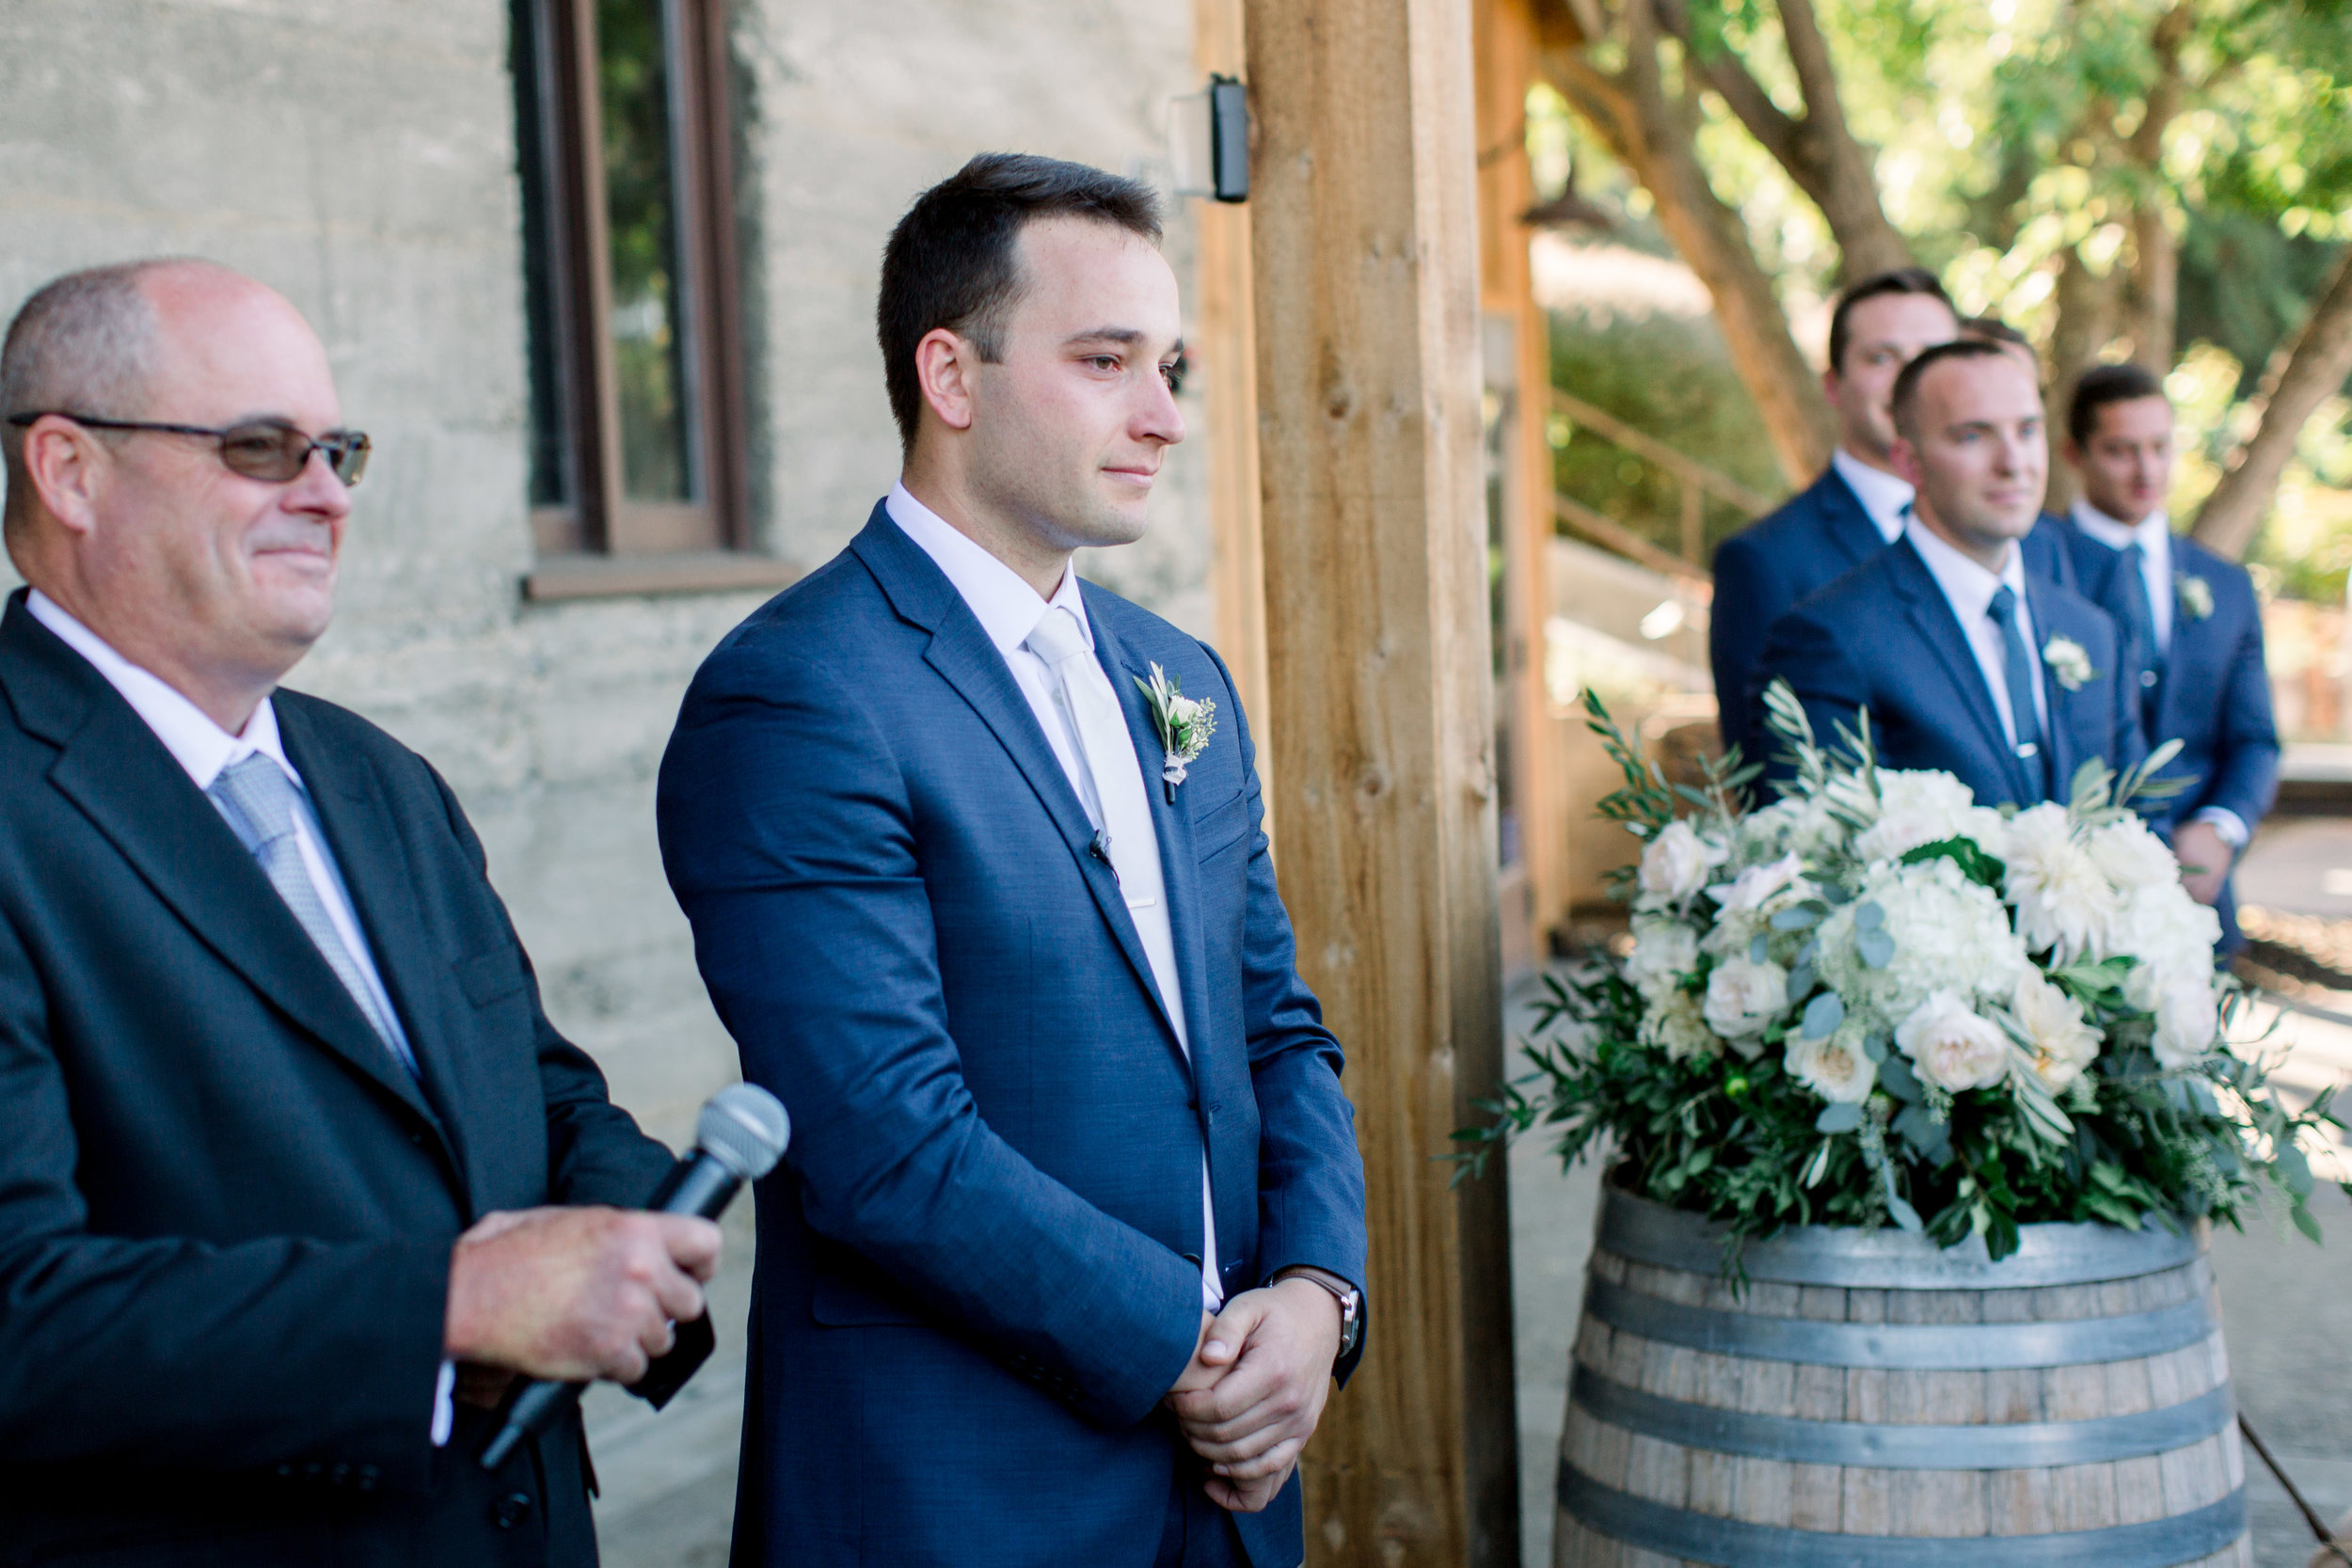 muriettas-well-wedding-in-livermore-california-22.jpg